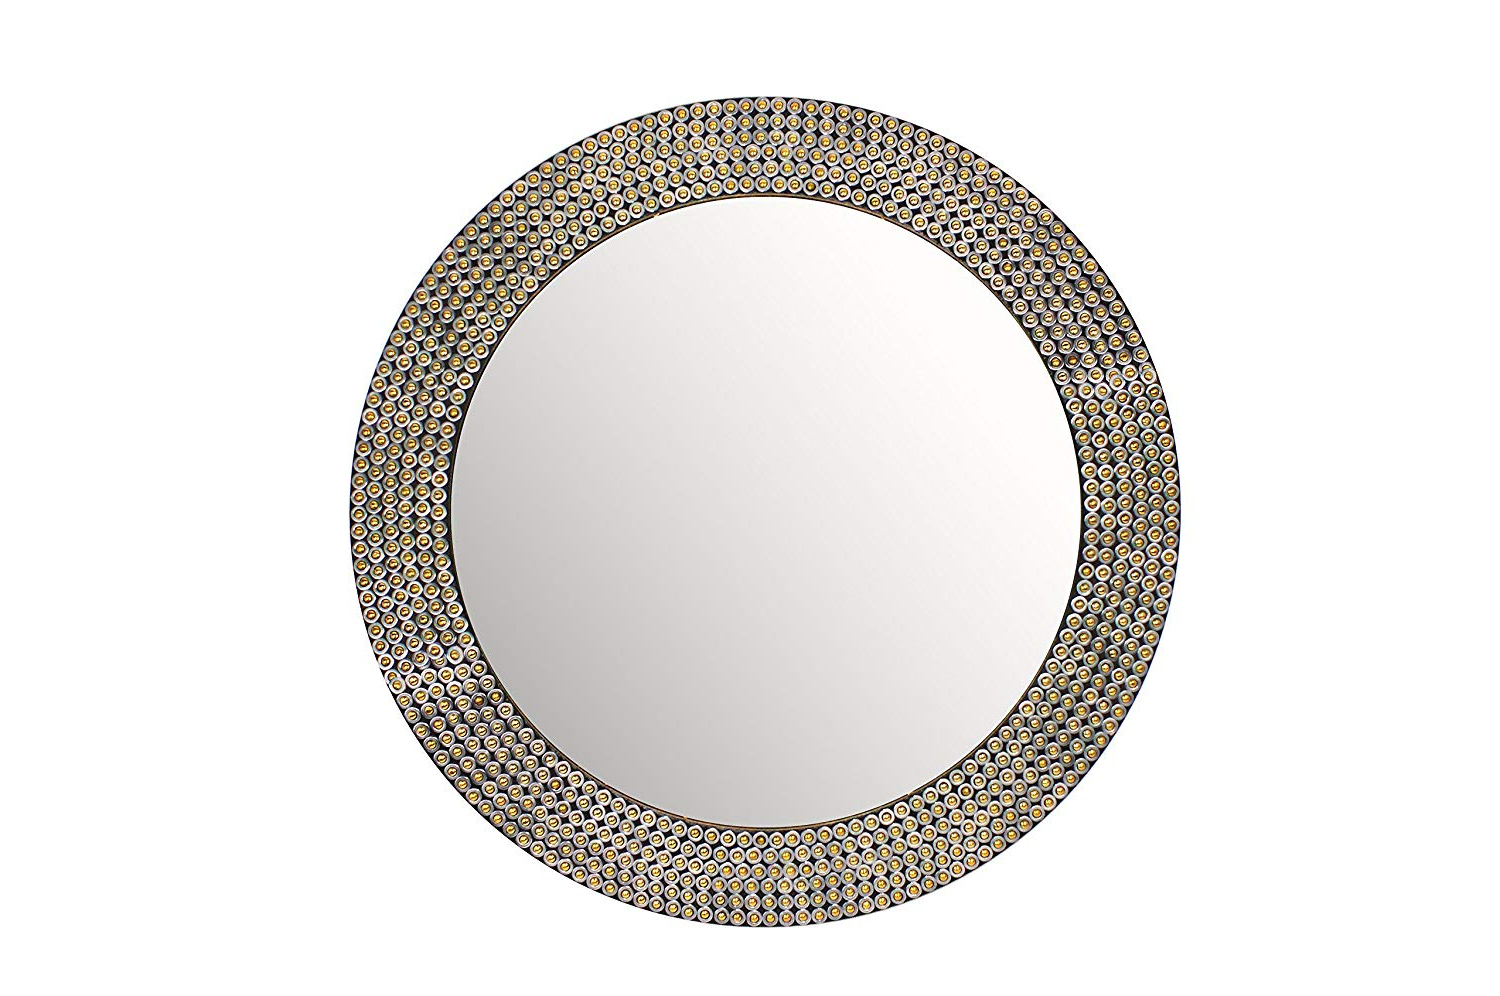 Best And Newest Buy Hosley Decorative Gold Metal Studded Wall Mirror Online Regarding Studded Wall Mirrors (View 7 of 20)